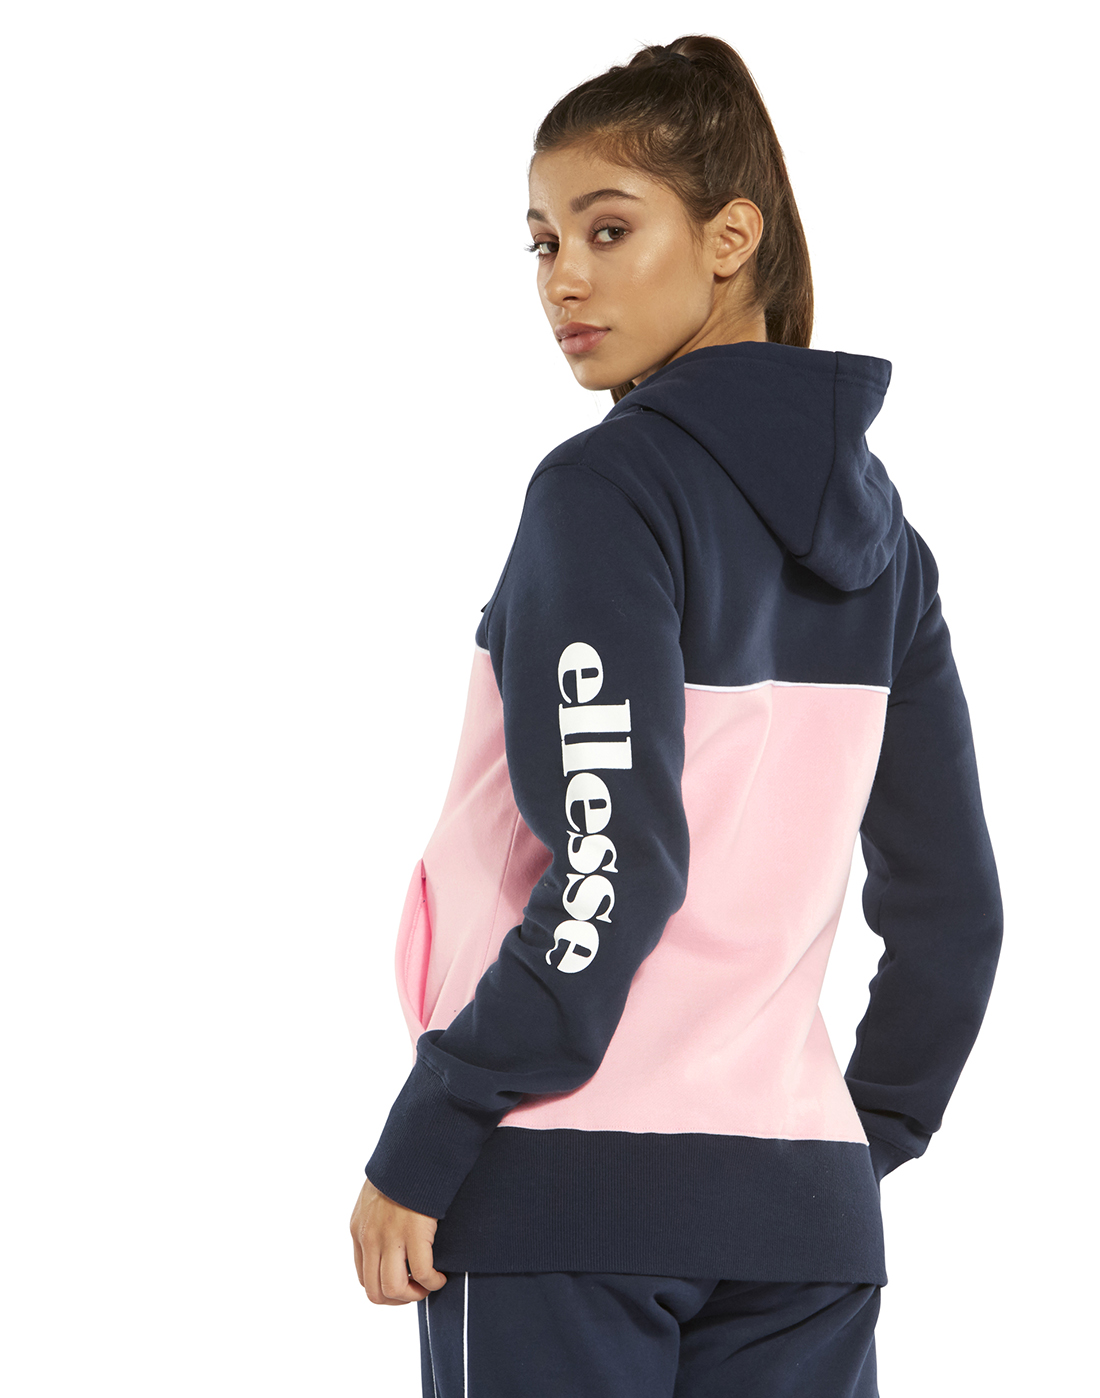 1c4aed06a6 Women's Navy & Pink Ellesse Hoodie | Life Style Sports